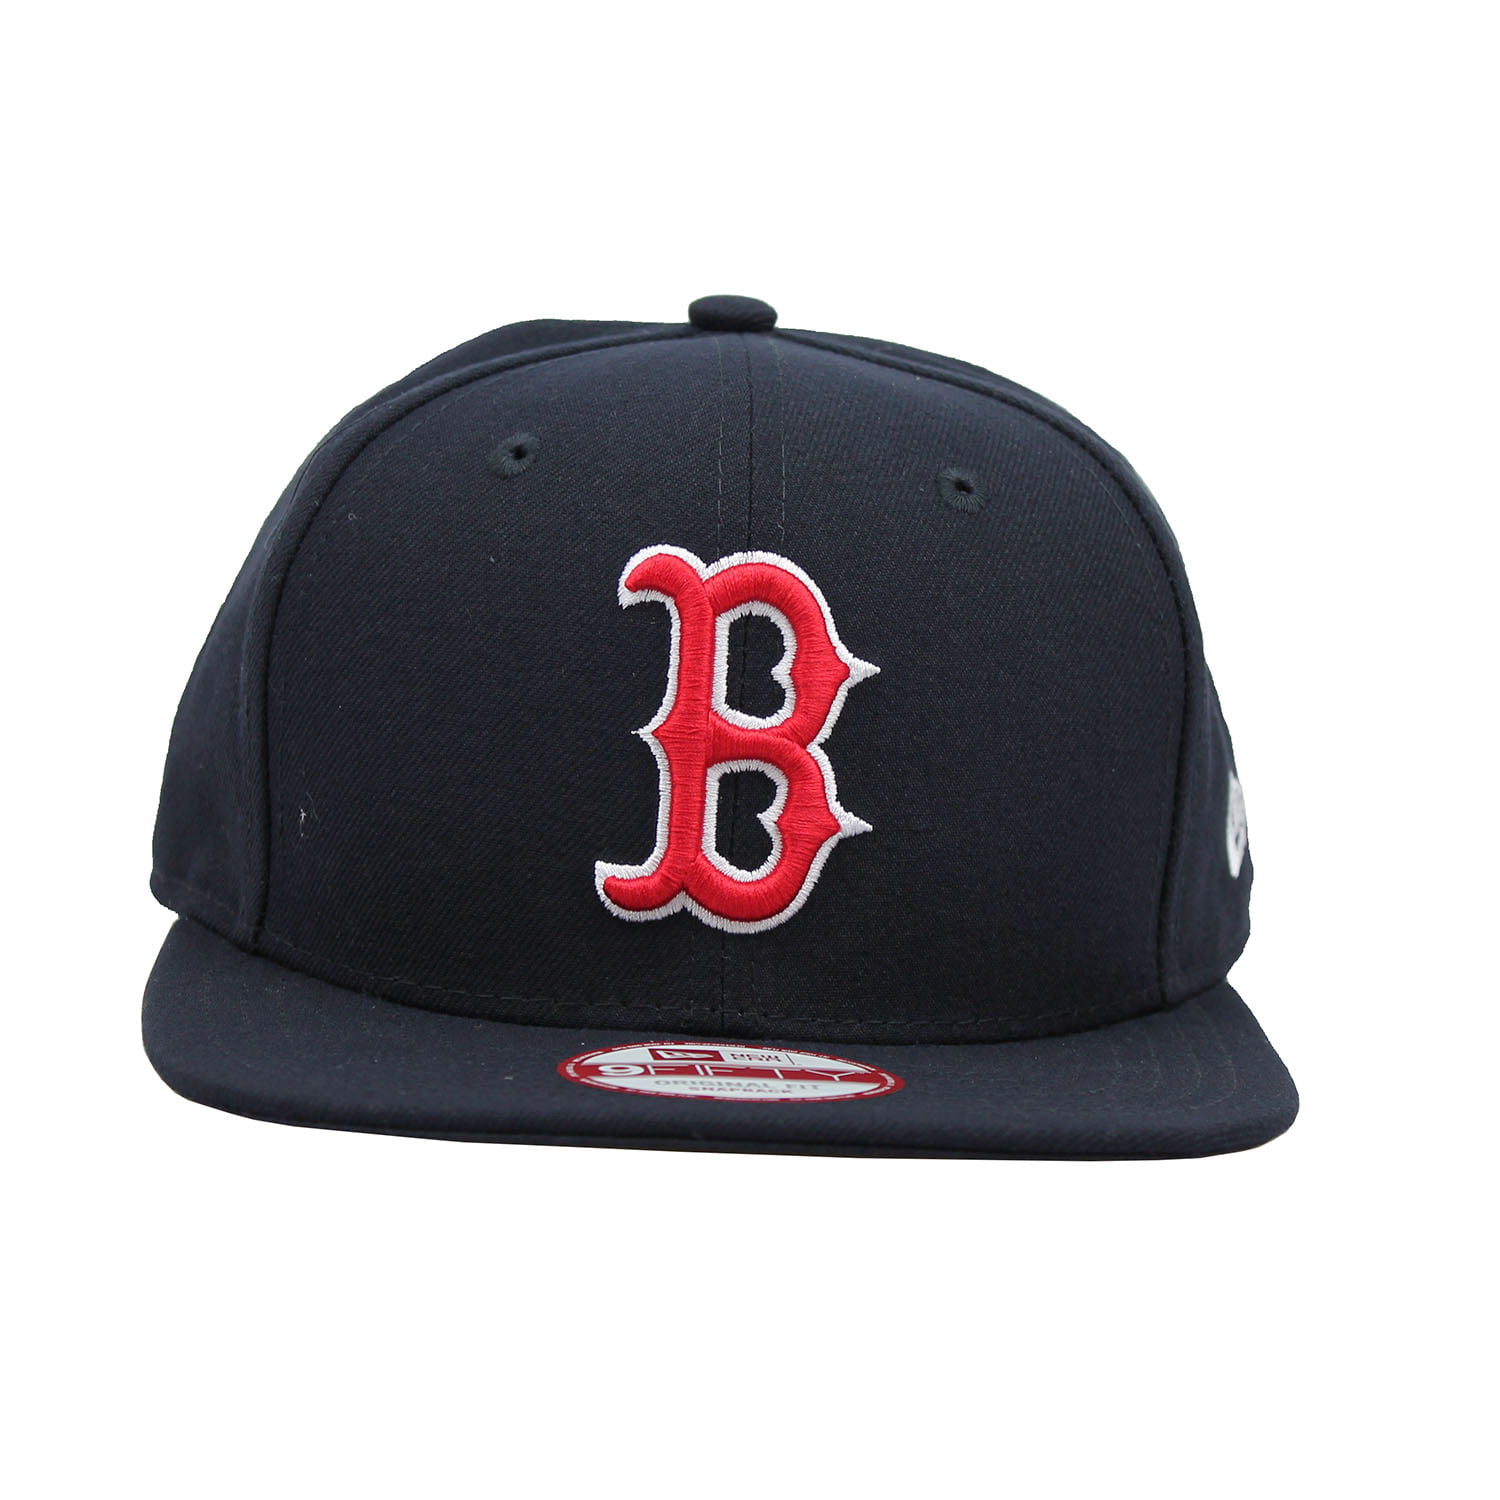 bone new era boston red sox 950 team color 722ae2a4099